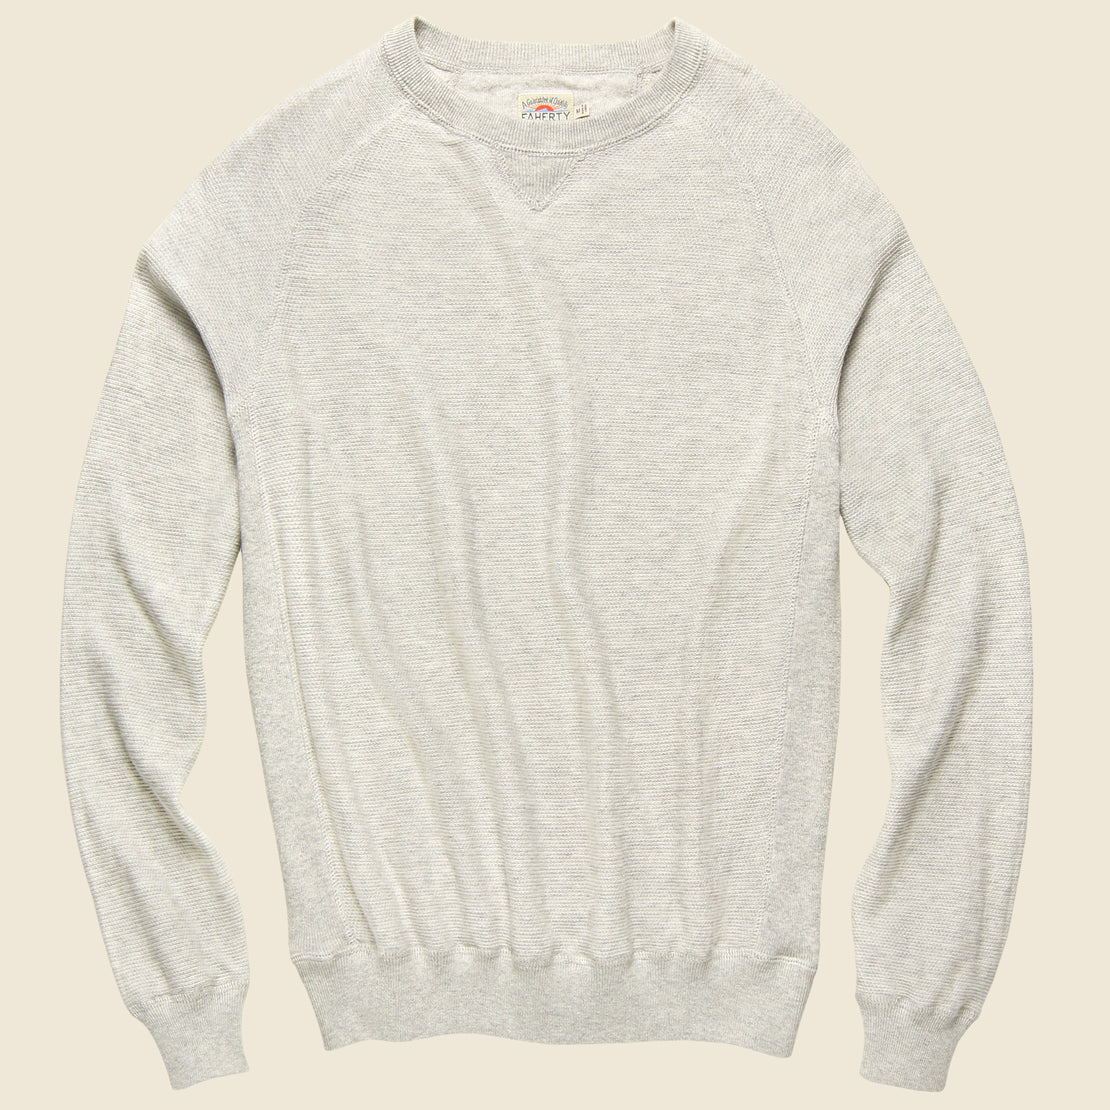 Faherty Coastline Crewneck - Heather Grey